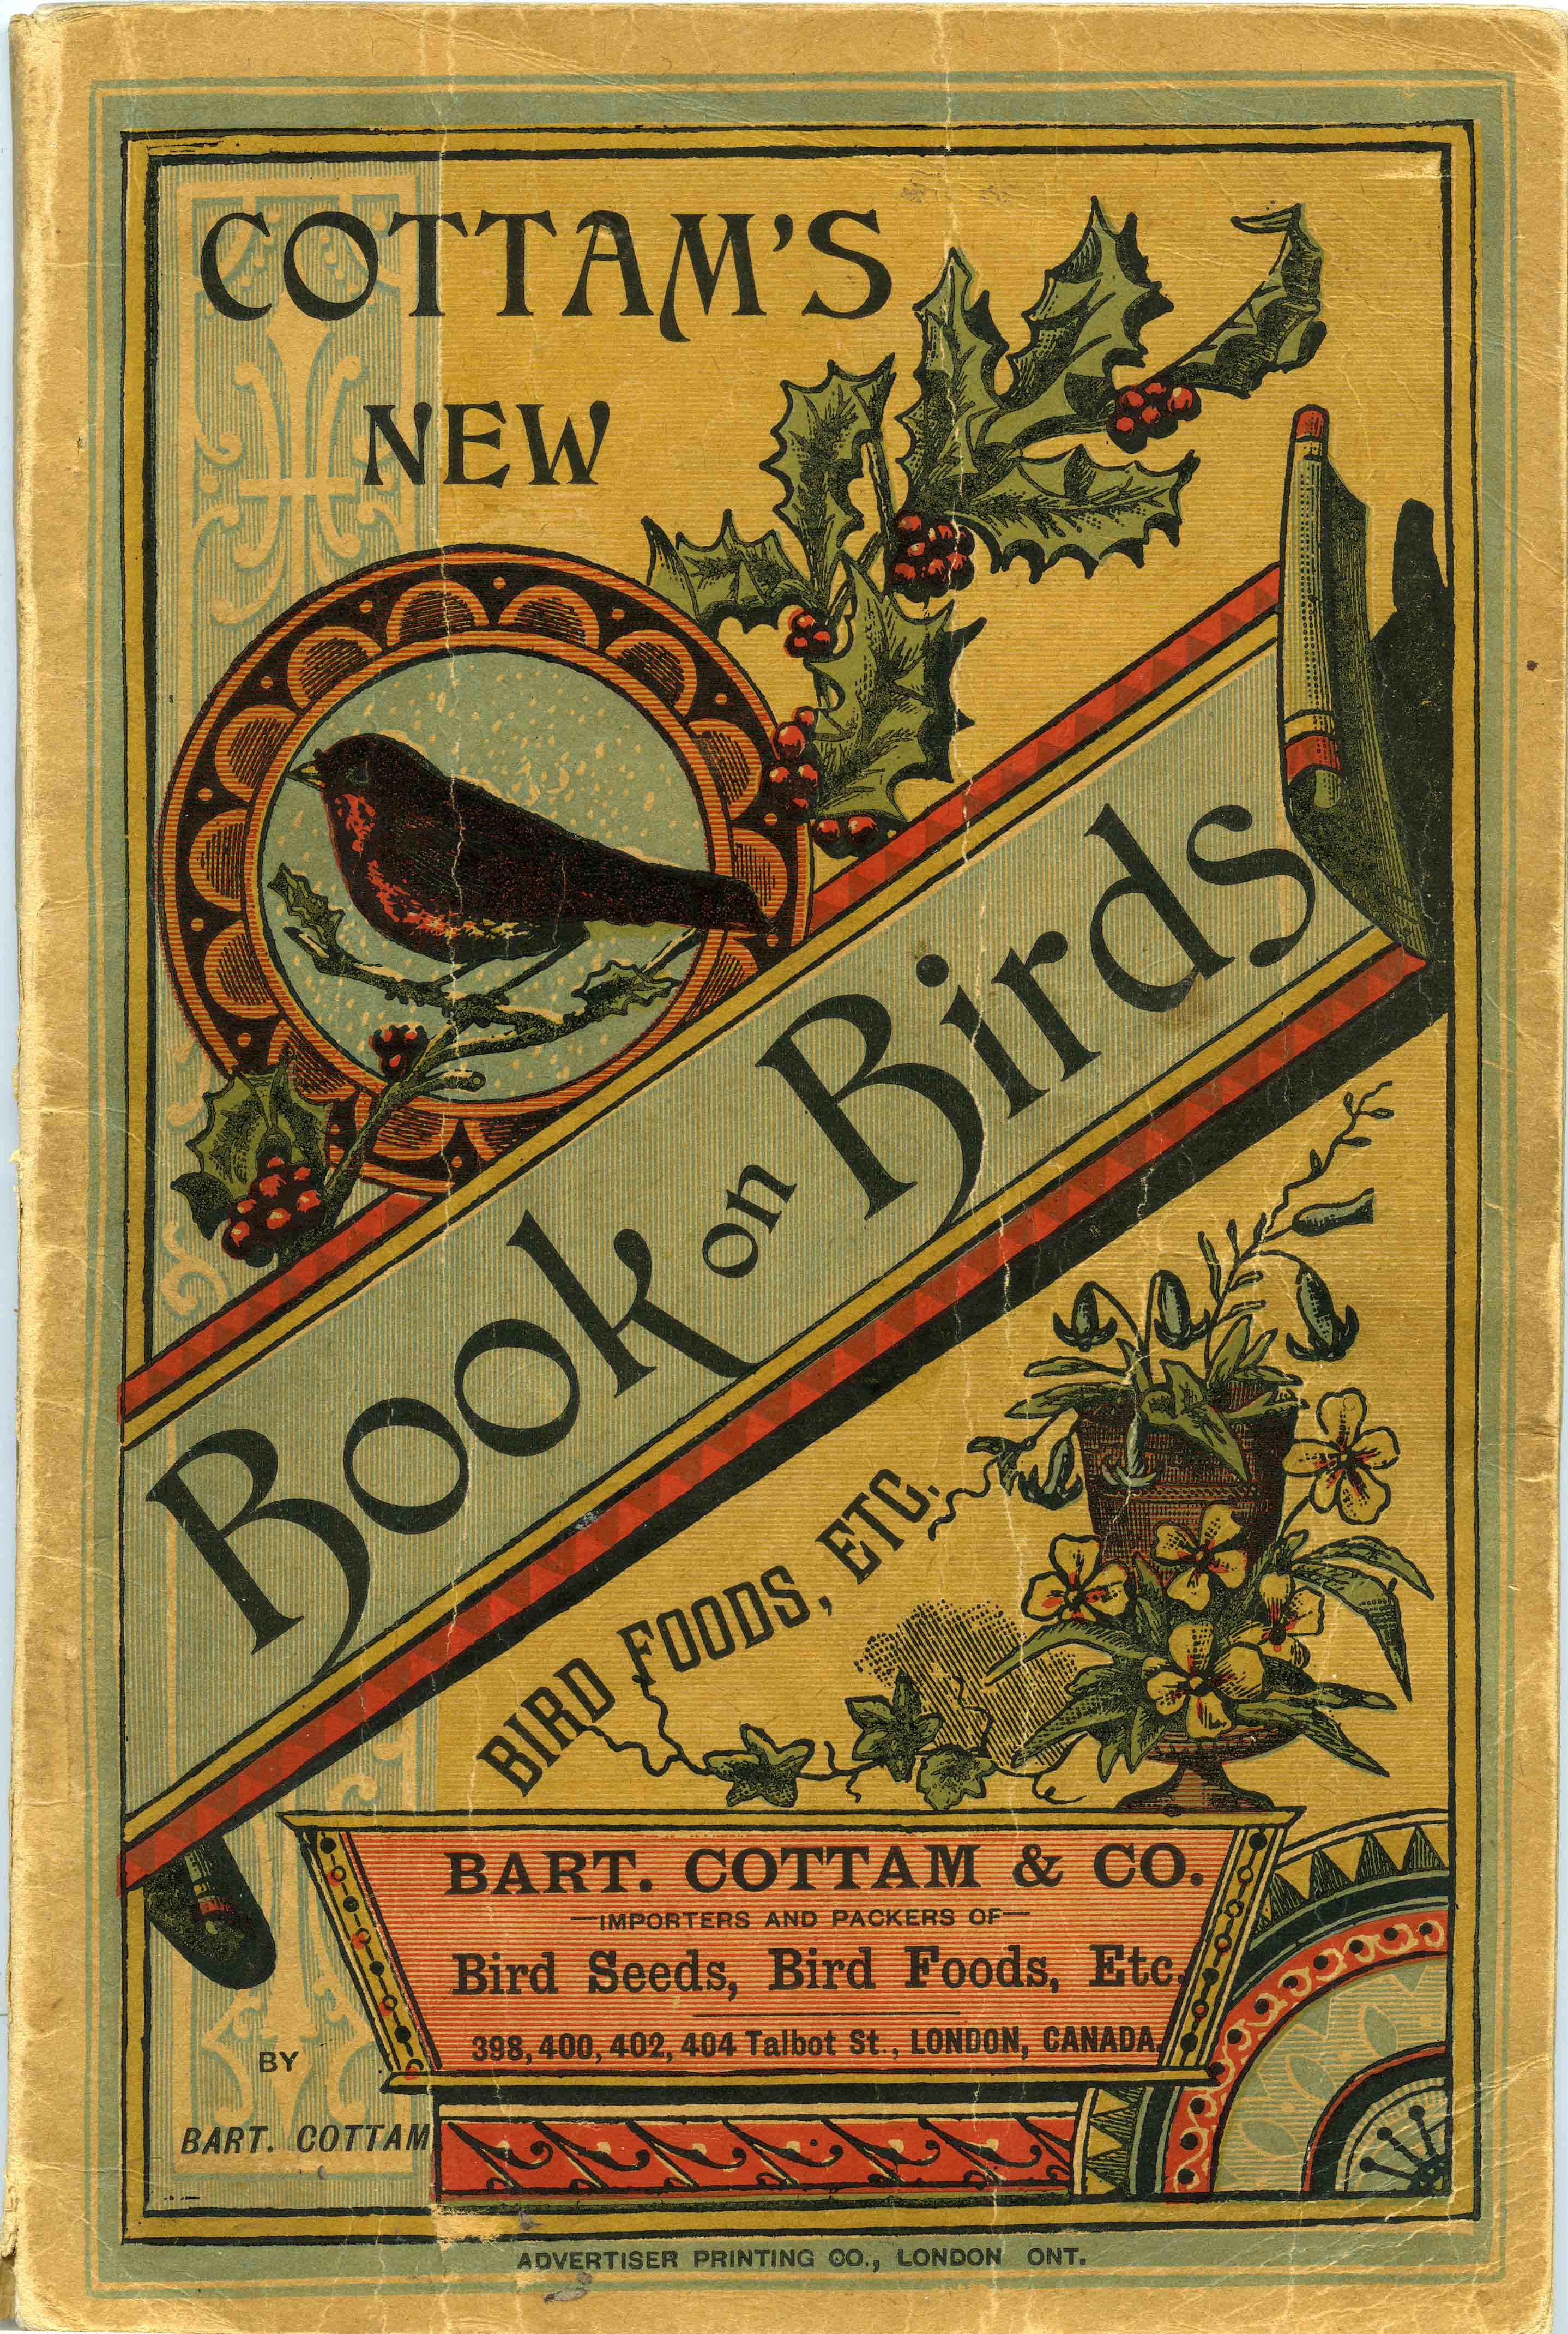 Cottam's New Illustrated Book on Caged Birds